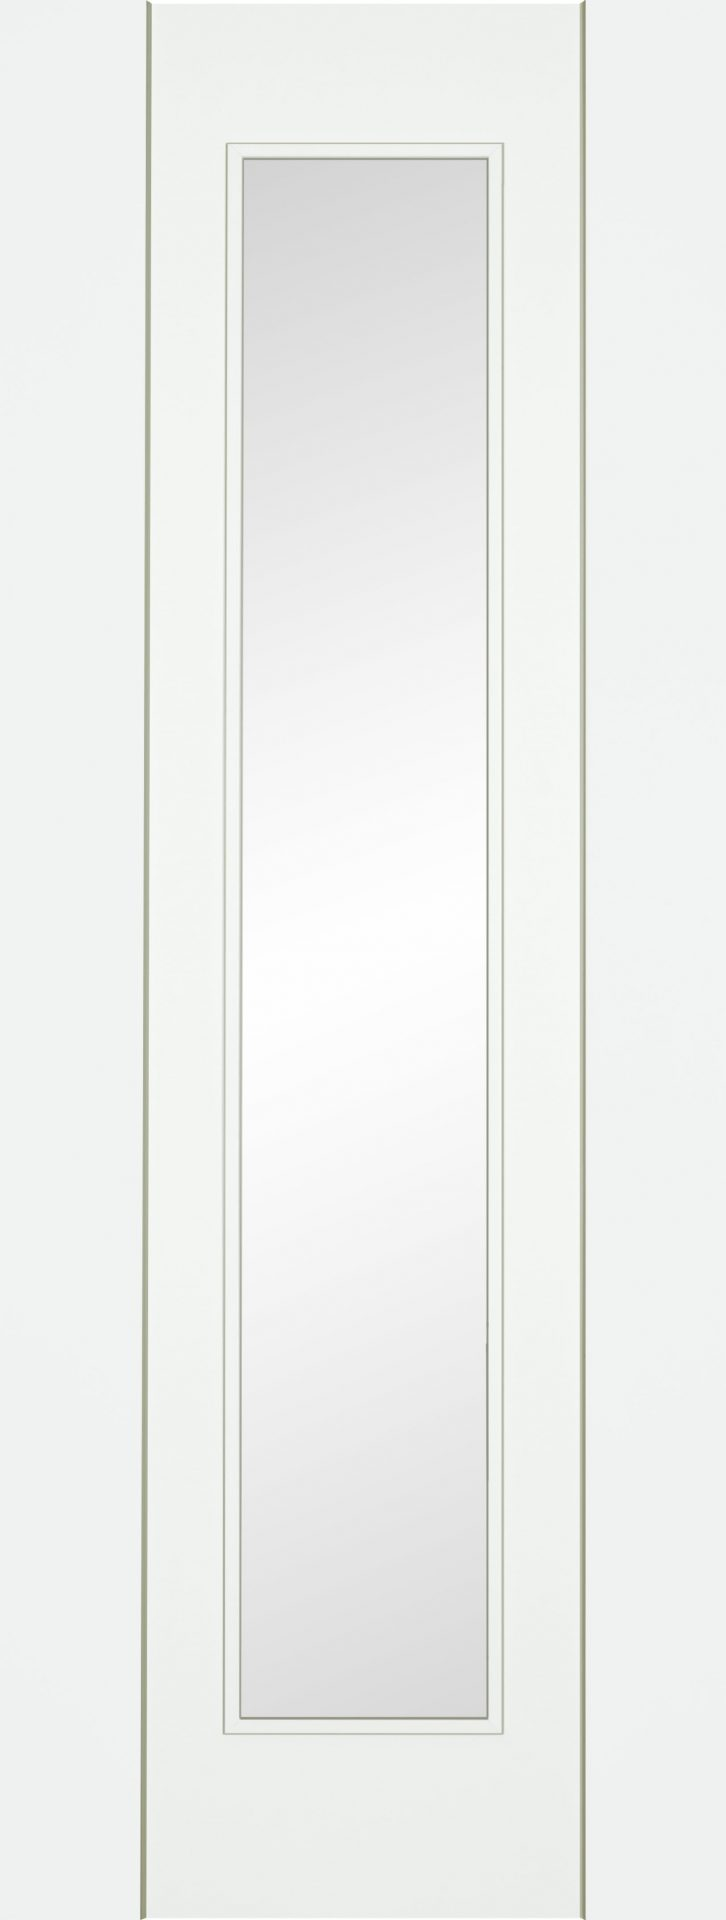 White clear glass